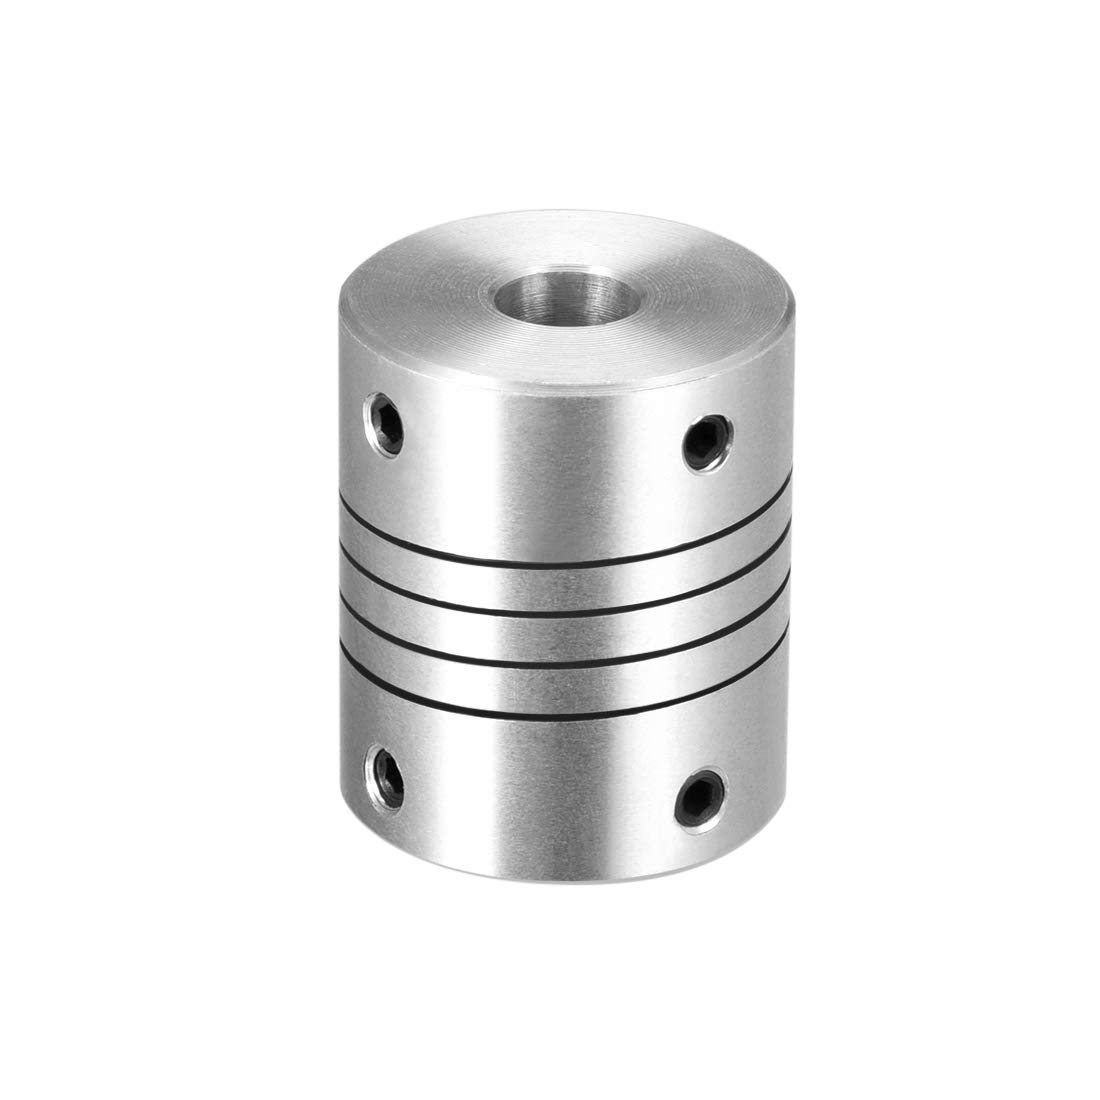 sourcing map 10mm to 10mm Aluminum Alloy Shaft Coupling Flexible Coupler Motor Connector Joint L30xD25 Silver